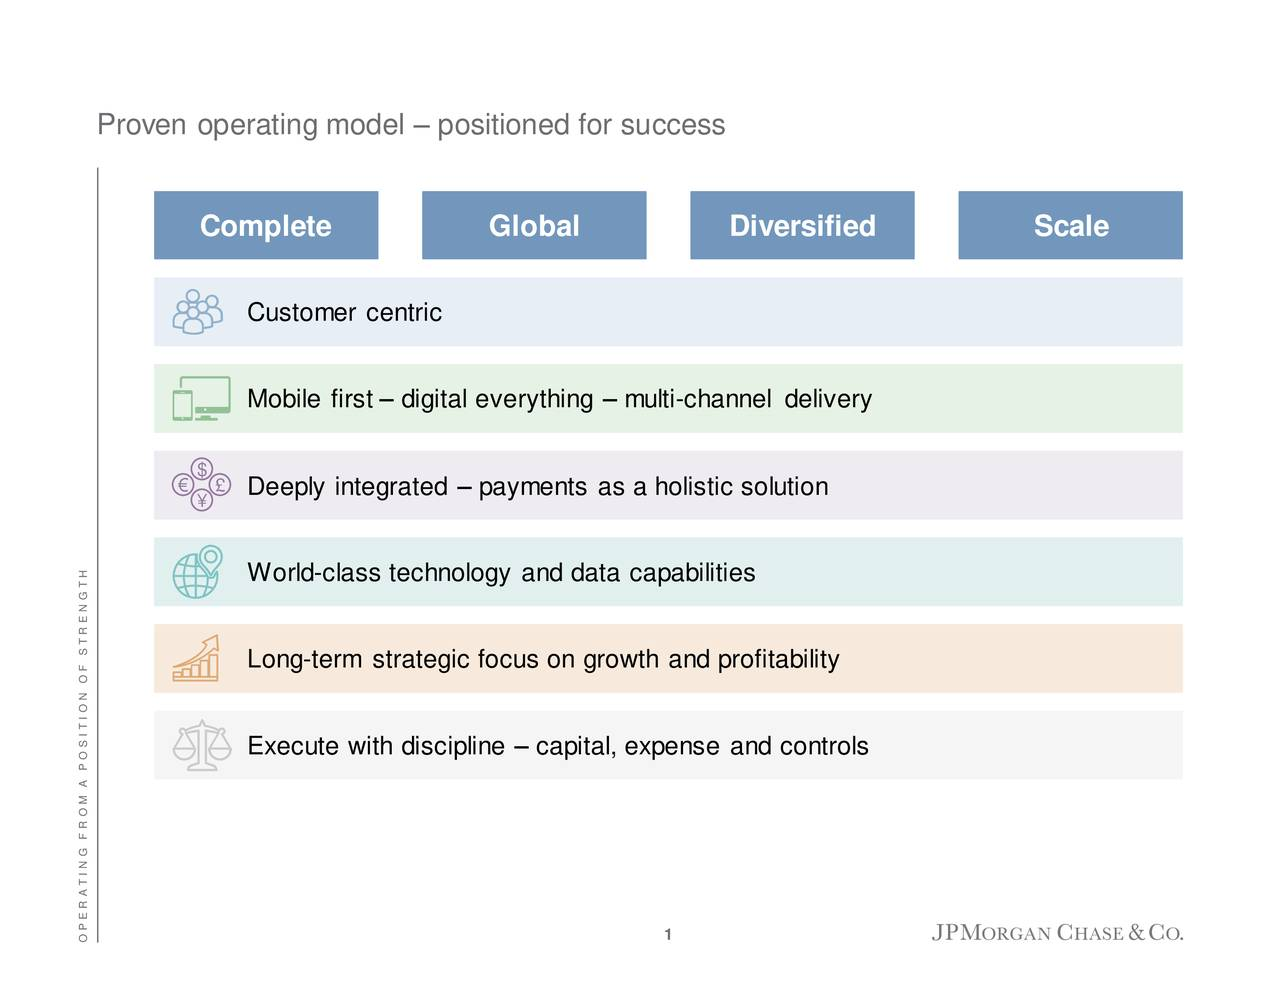 Complete Global Diversified Scale Customer centric Mobile first – digital everything – multi-channel delivery $ € £ Deeply integrated – payments as a holistic solution ¥ World-class technology and data capabilities Long-term strategic focus on growth and profitability Execute with discipline – capital, expense and controls O P E R A T I N G F R O M A P O S I T I O N O F S T R E N G T H